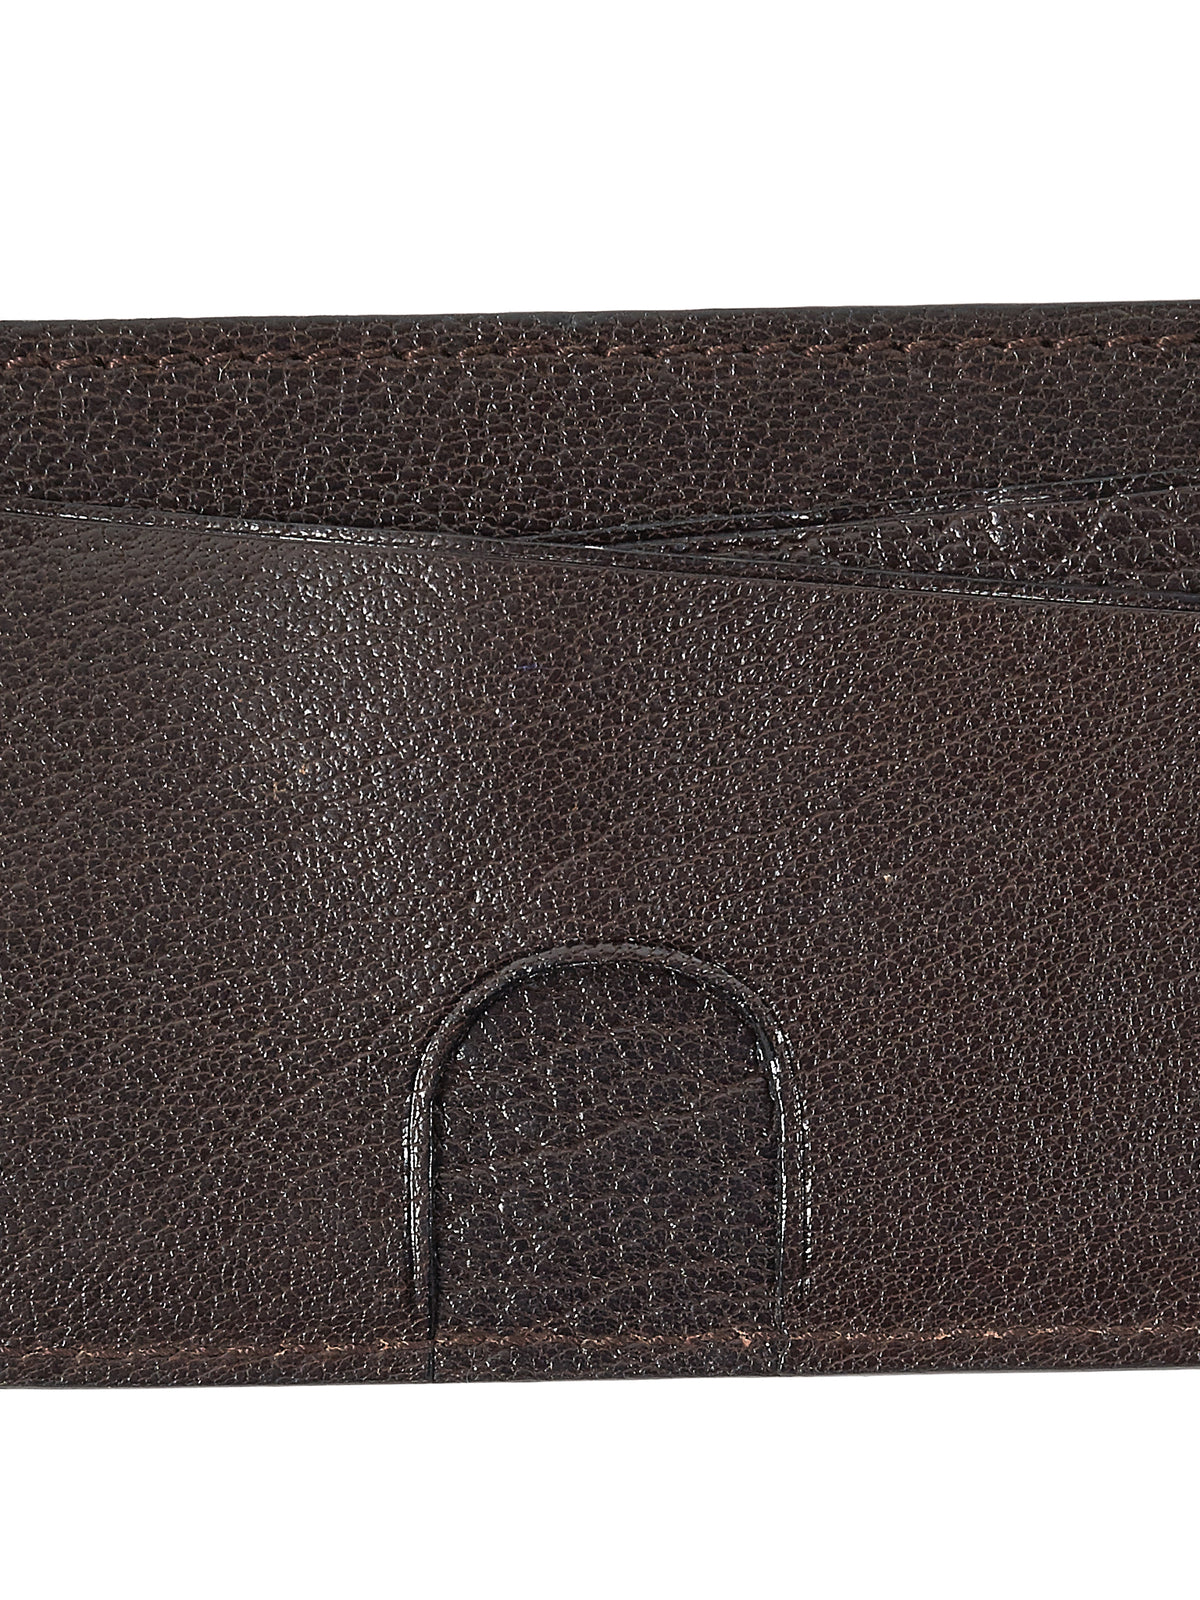 Tumbled Leather Cardholder (WL123-VGM-BROWN)